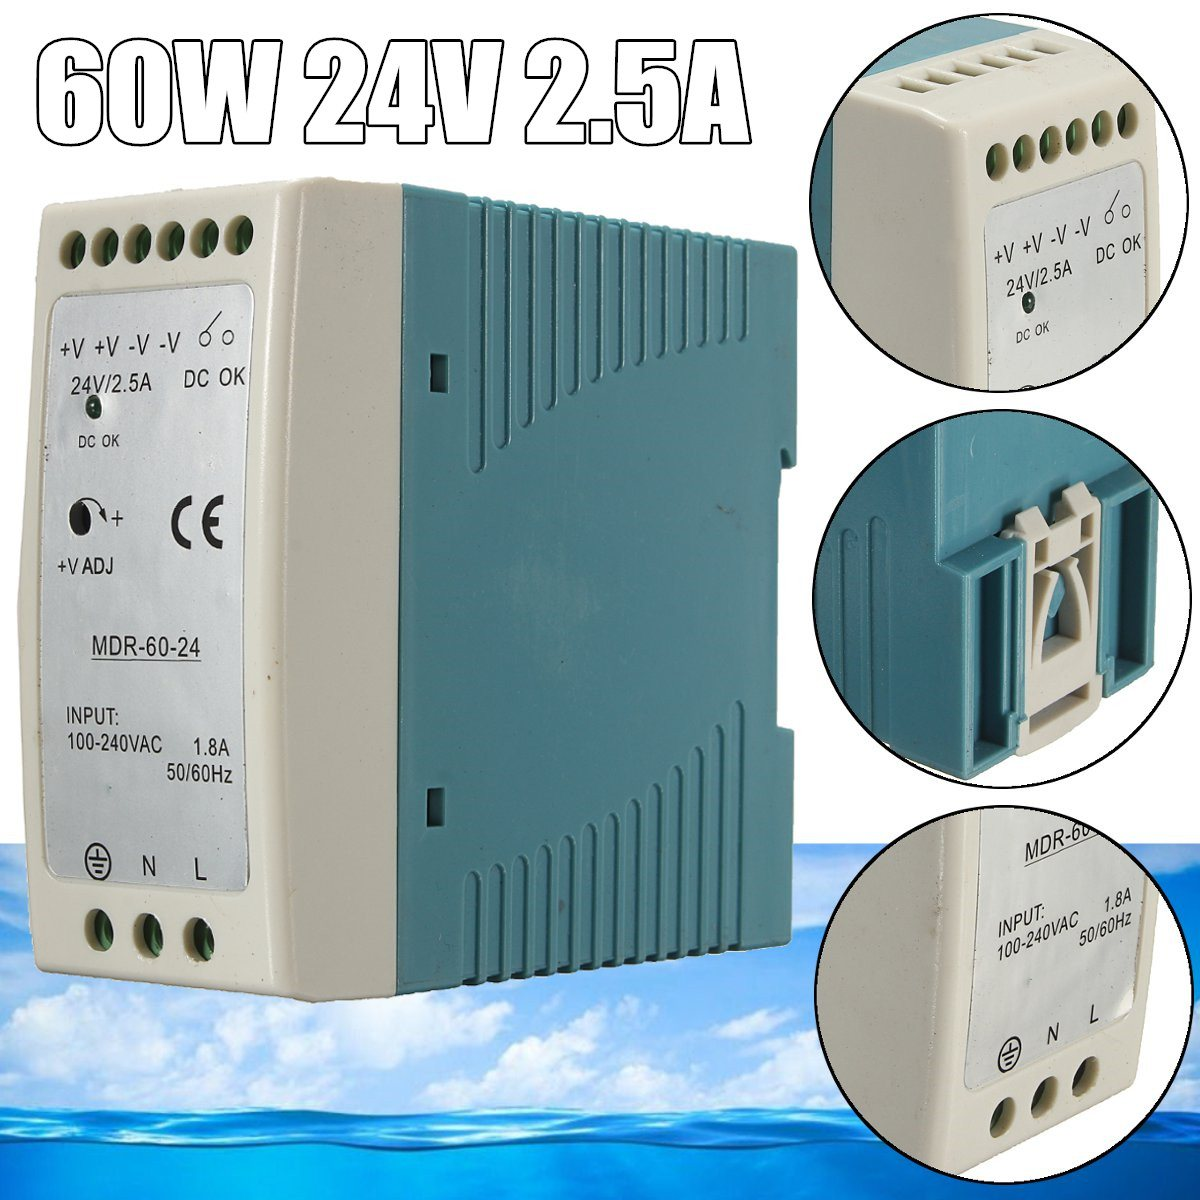 все цены на Single Output 60W 24v 2.5A DIN Rail Power Supply MDR-60-24 from maker New Arrival